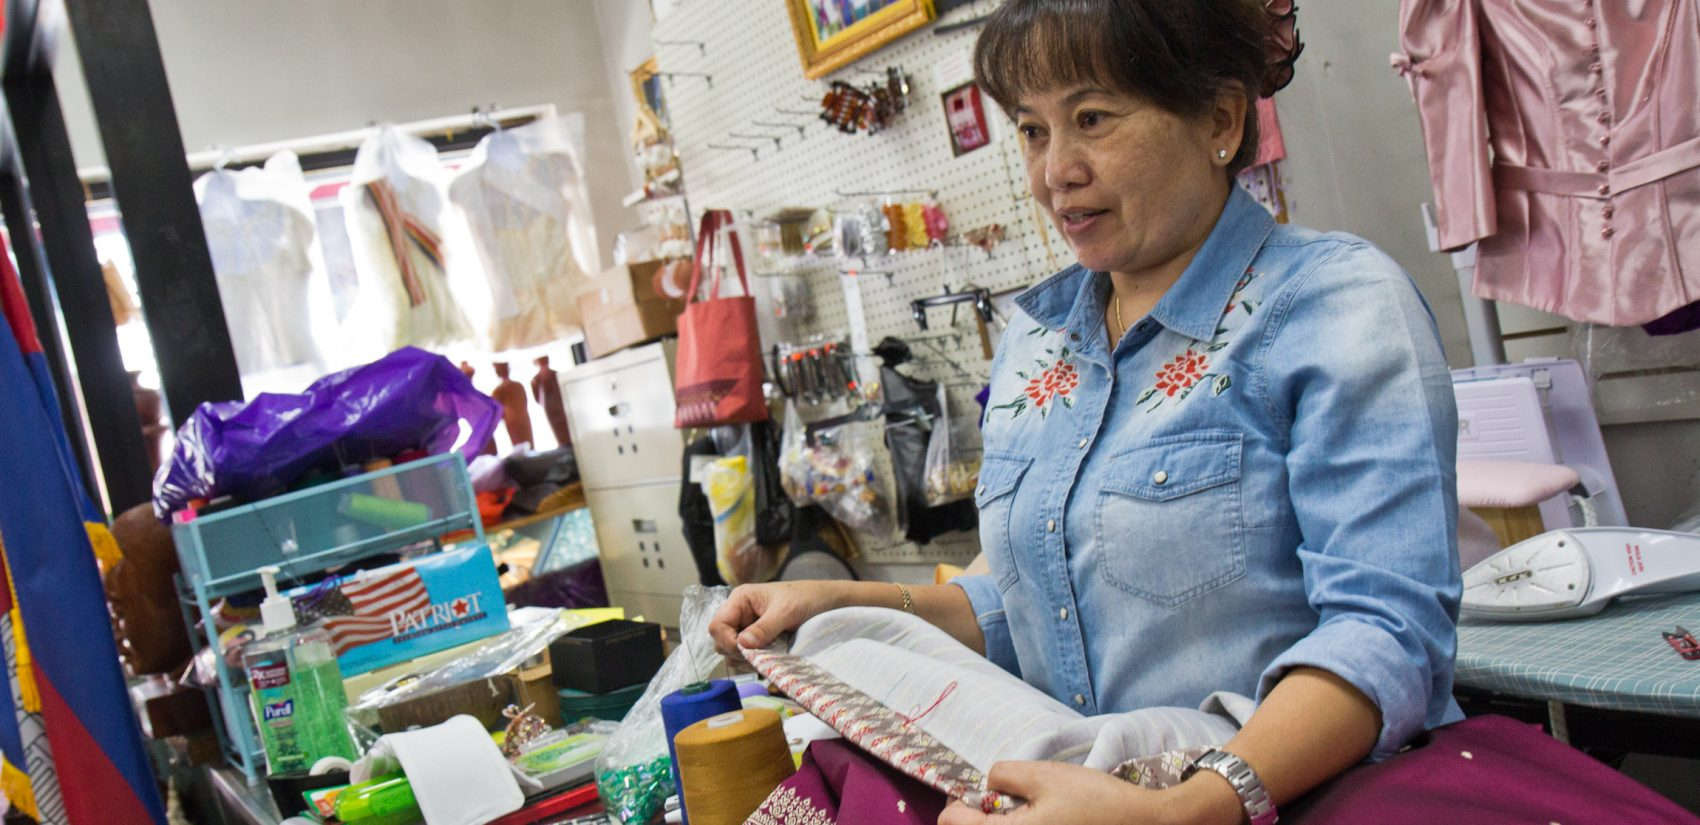 Phally Seng sews in her dress shop on South 7th Street. (Kimberly Paynter/WHYY)